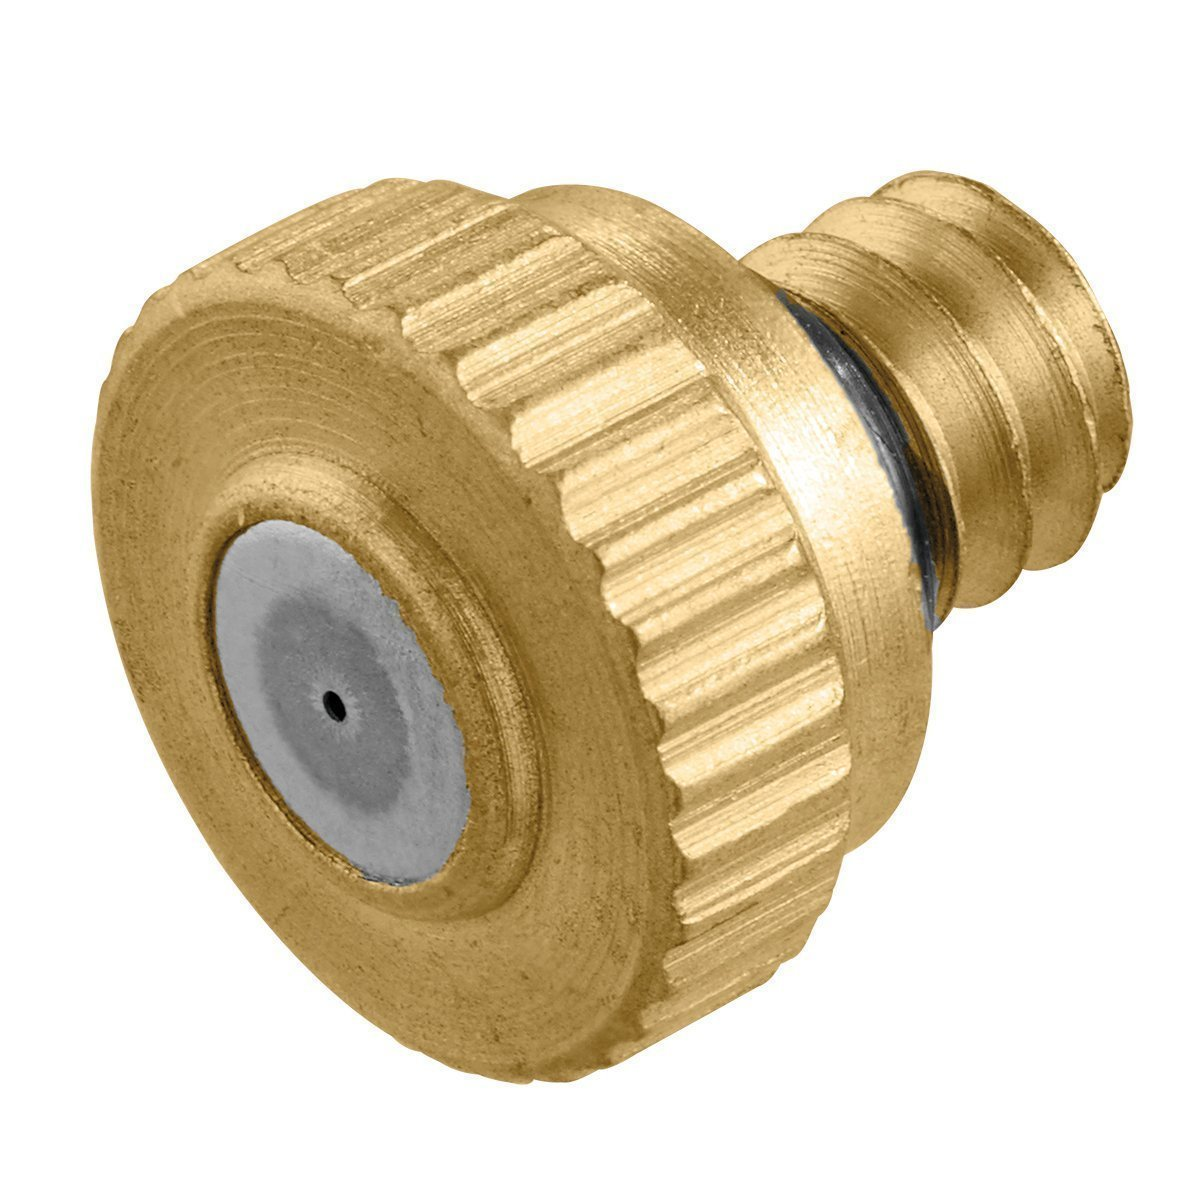 Brass Misting Nozzles For Cooling System by Kobold CL-130801 (10)